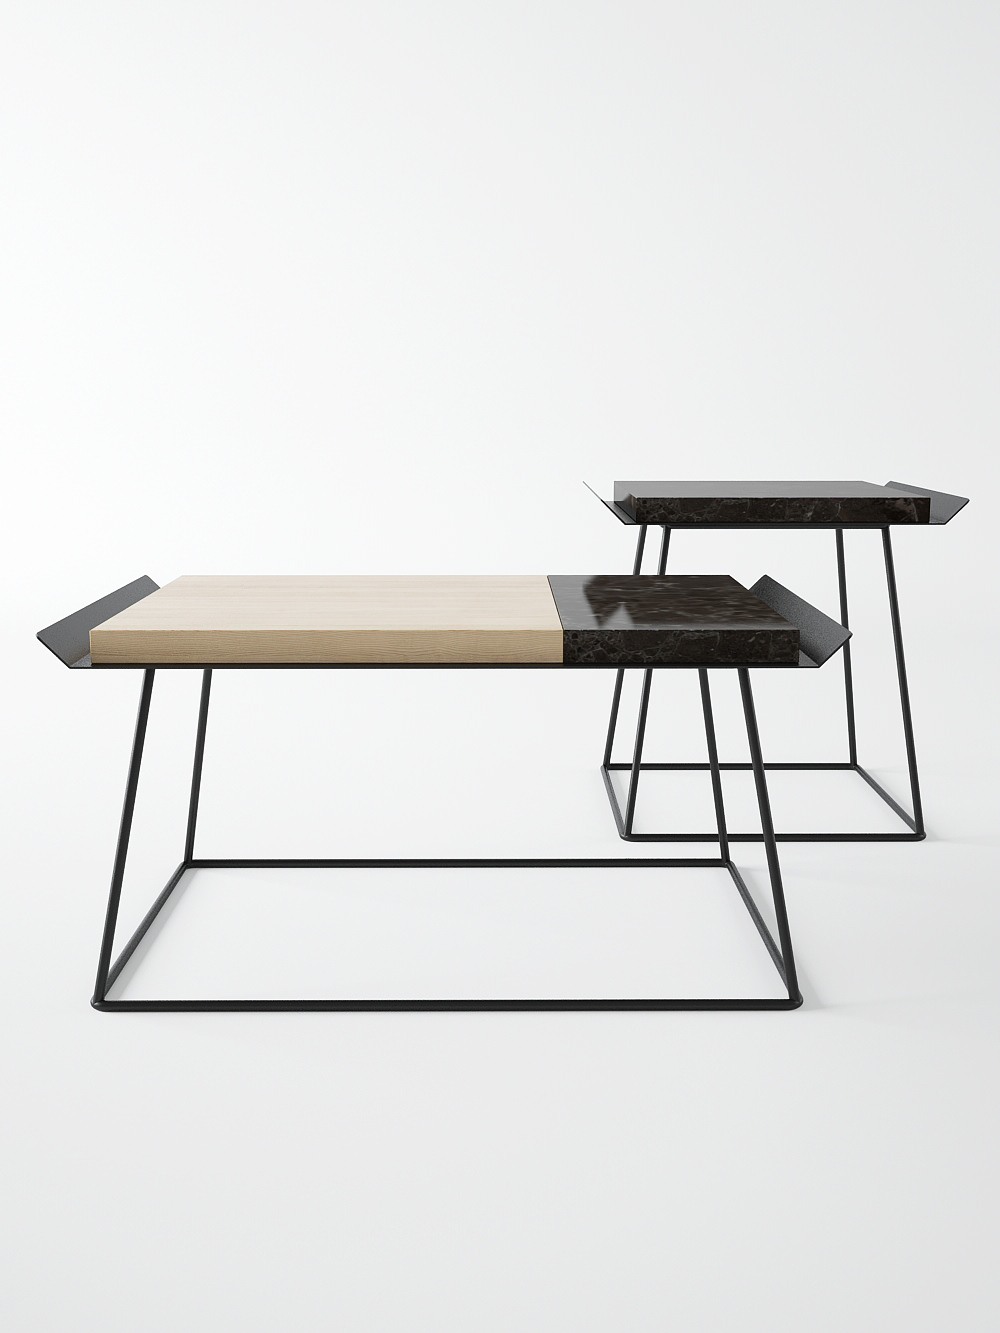 Emejing Table De Designer Contemporary - Joshkrajcik.us - joshkrajcik.us